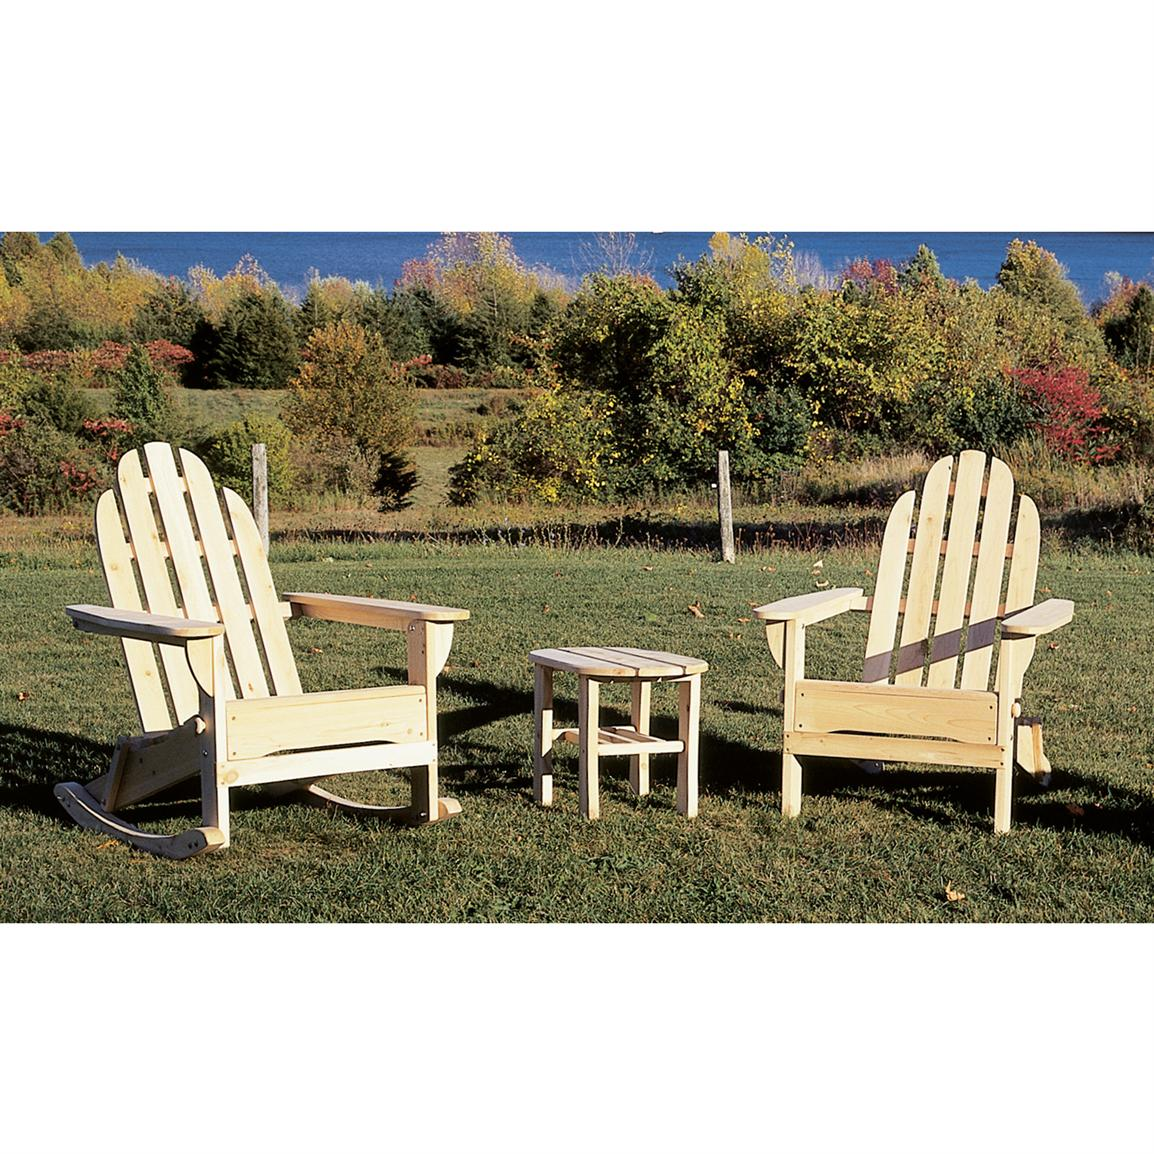 Cedar Adirondack Rocker Chair Patio Furniture at